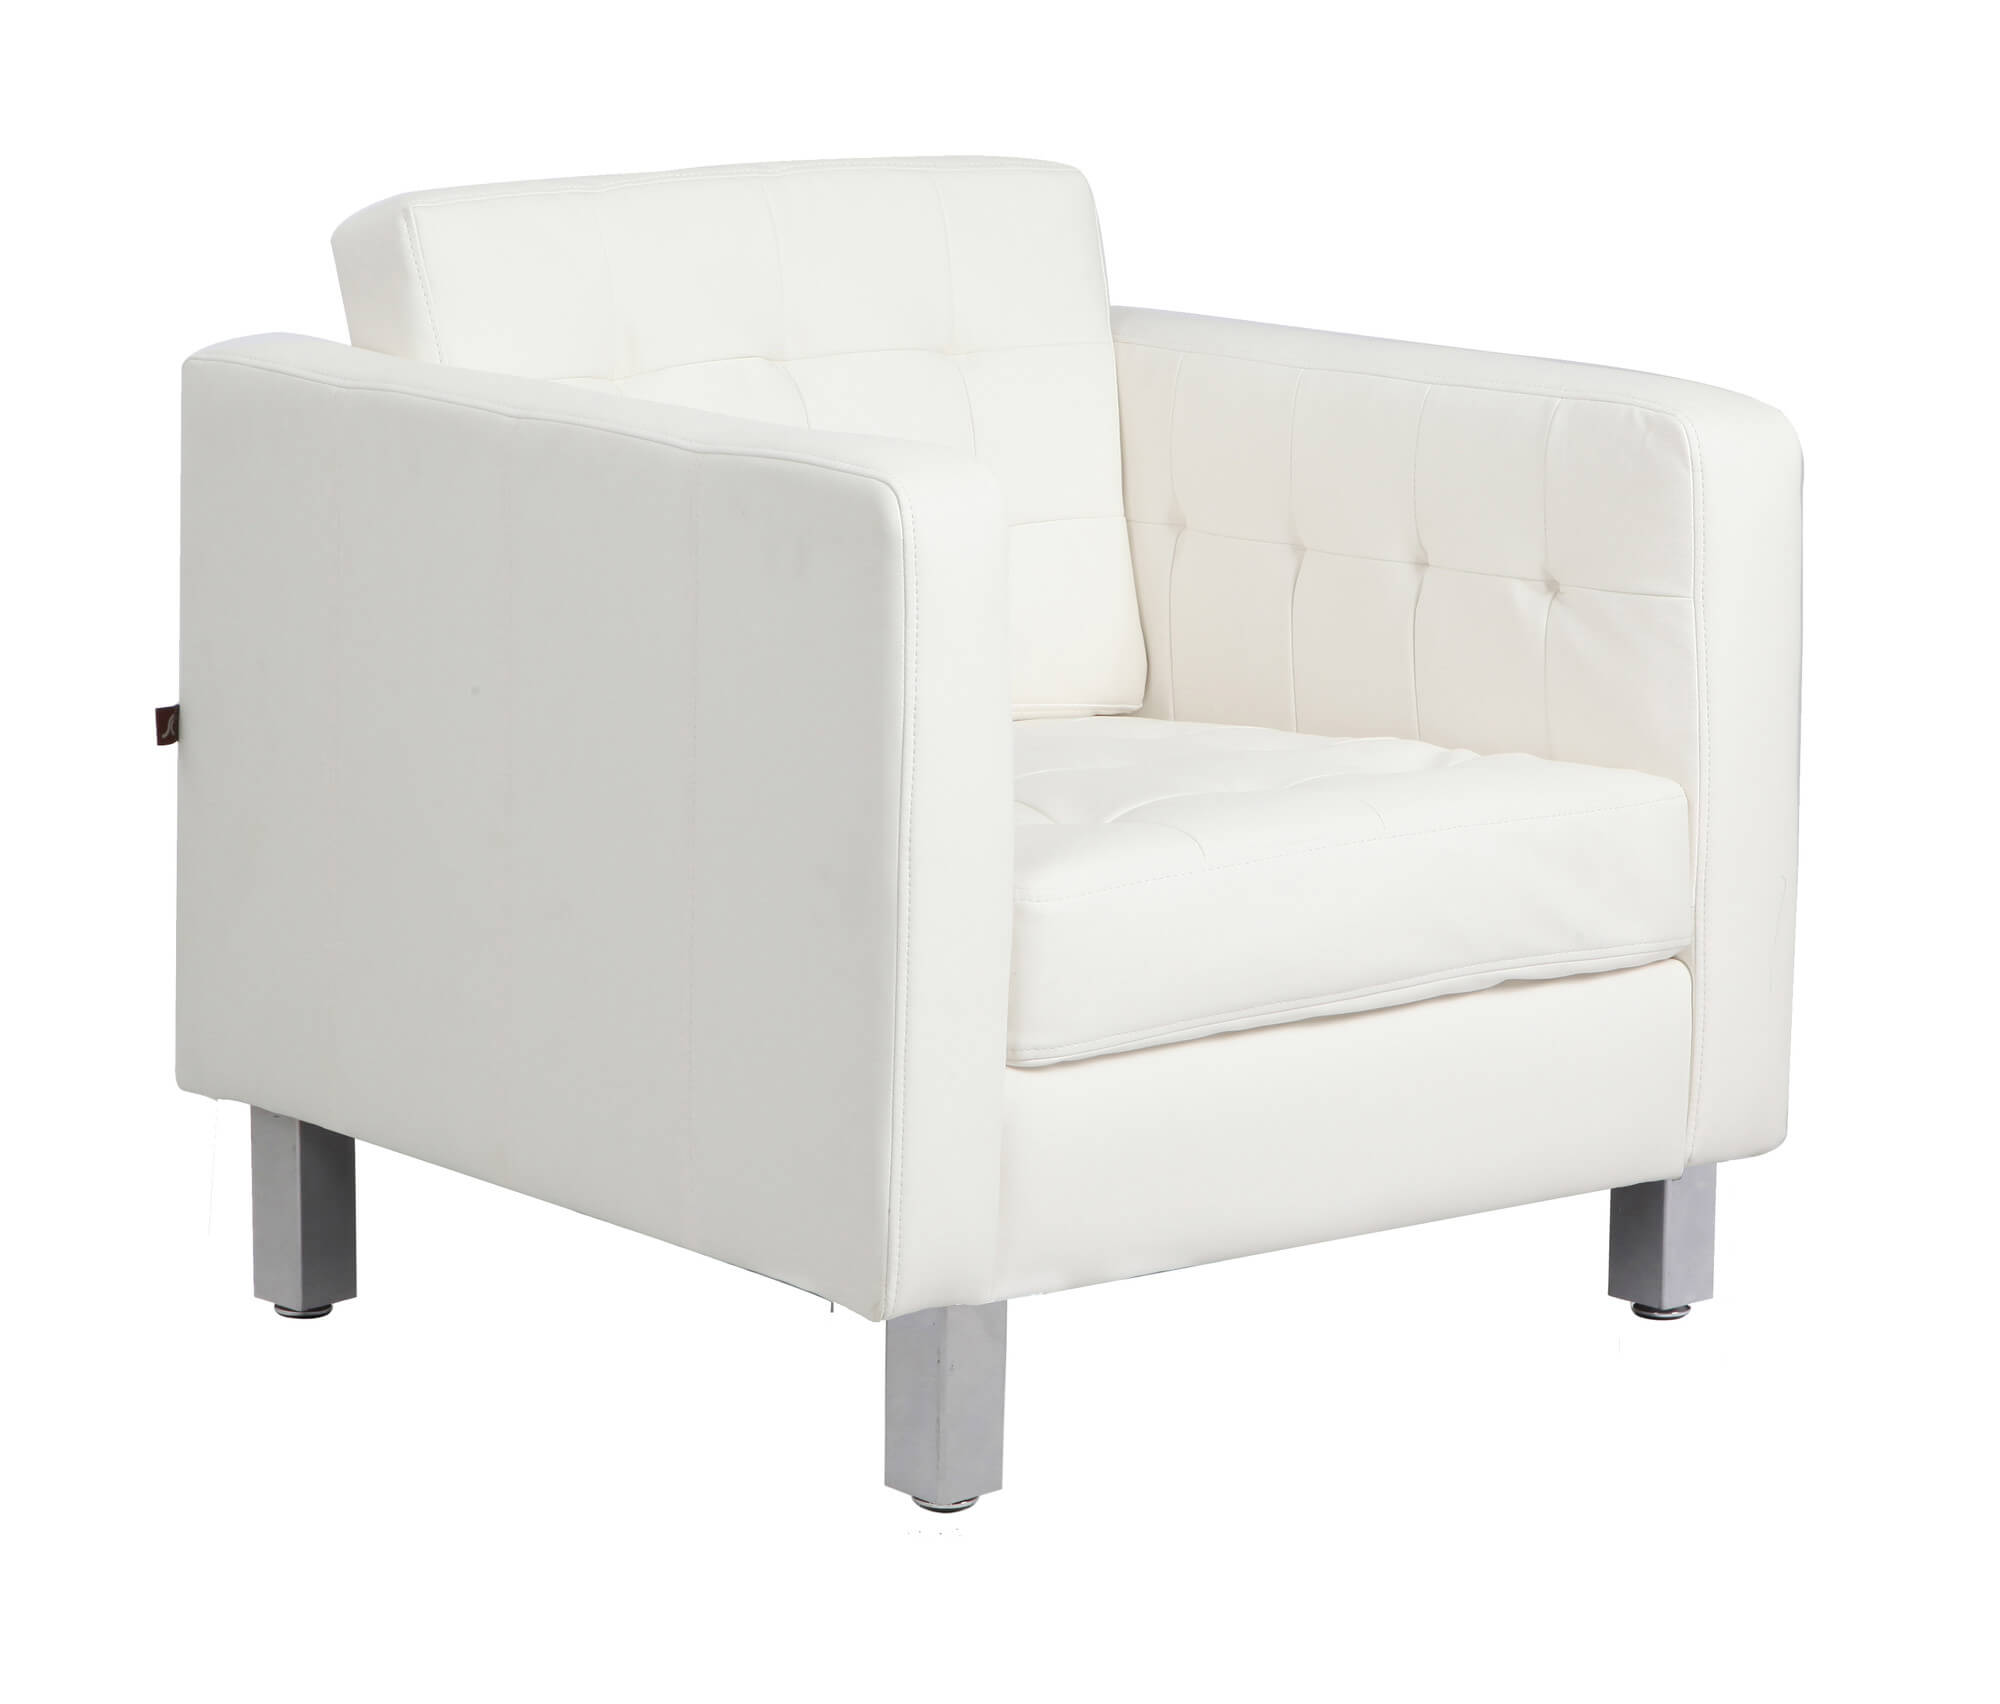 37 white modern accent chairs for the living room for Modern black and white furniture